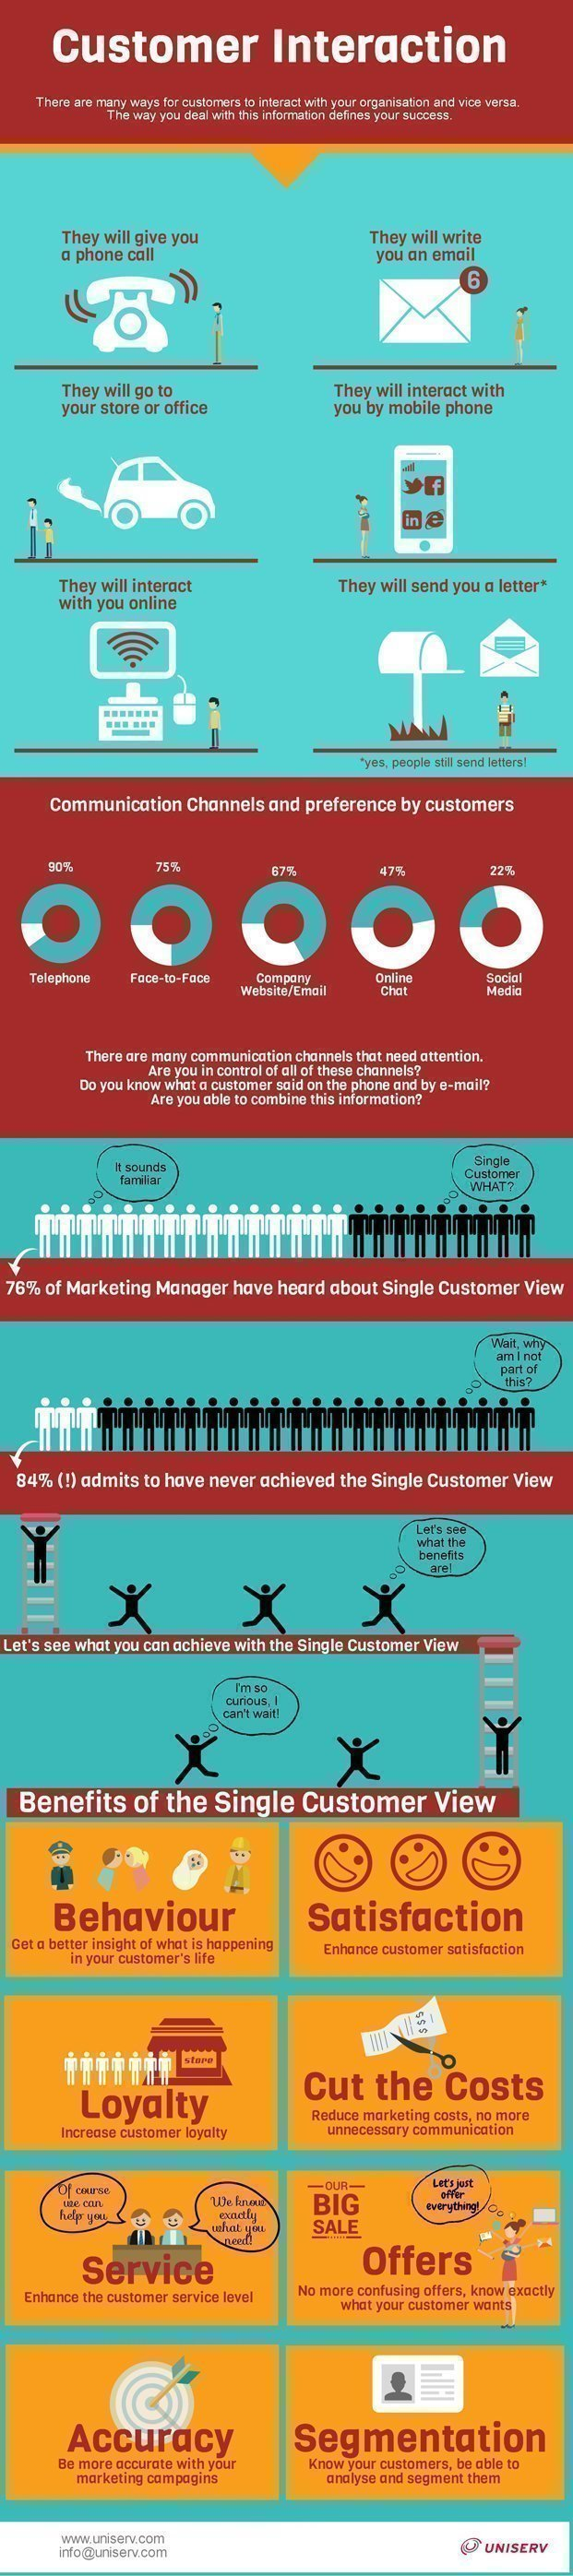 How to manage the right customer interaction